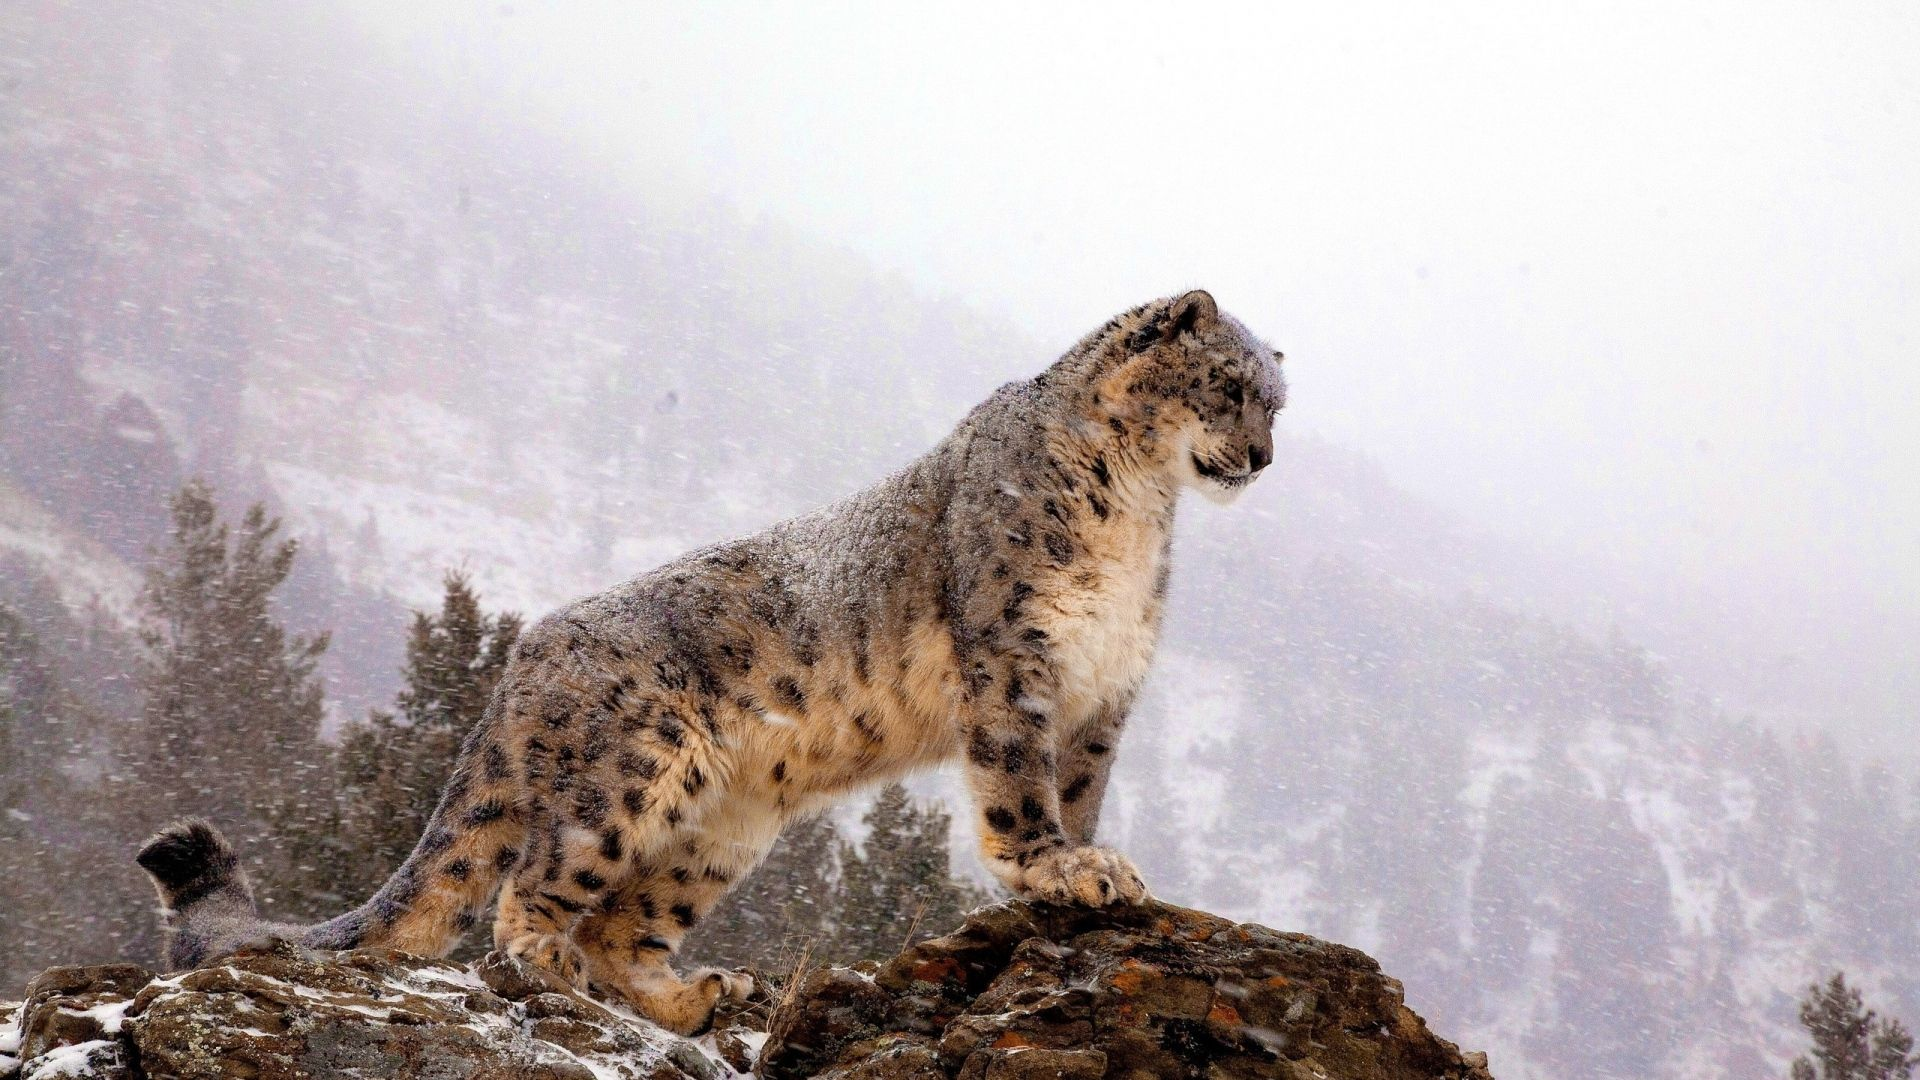 leopard wallpapers backgrounds images freecreatives